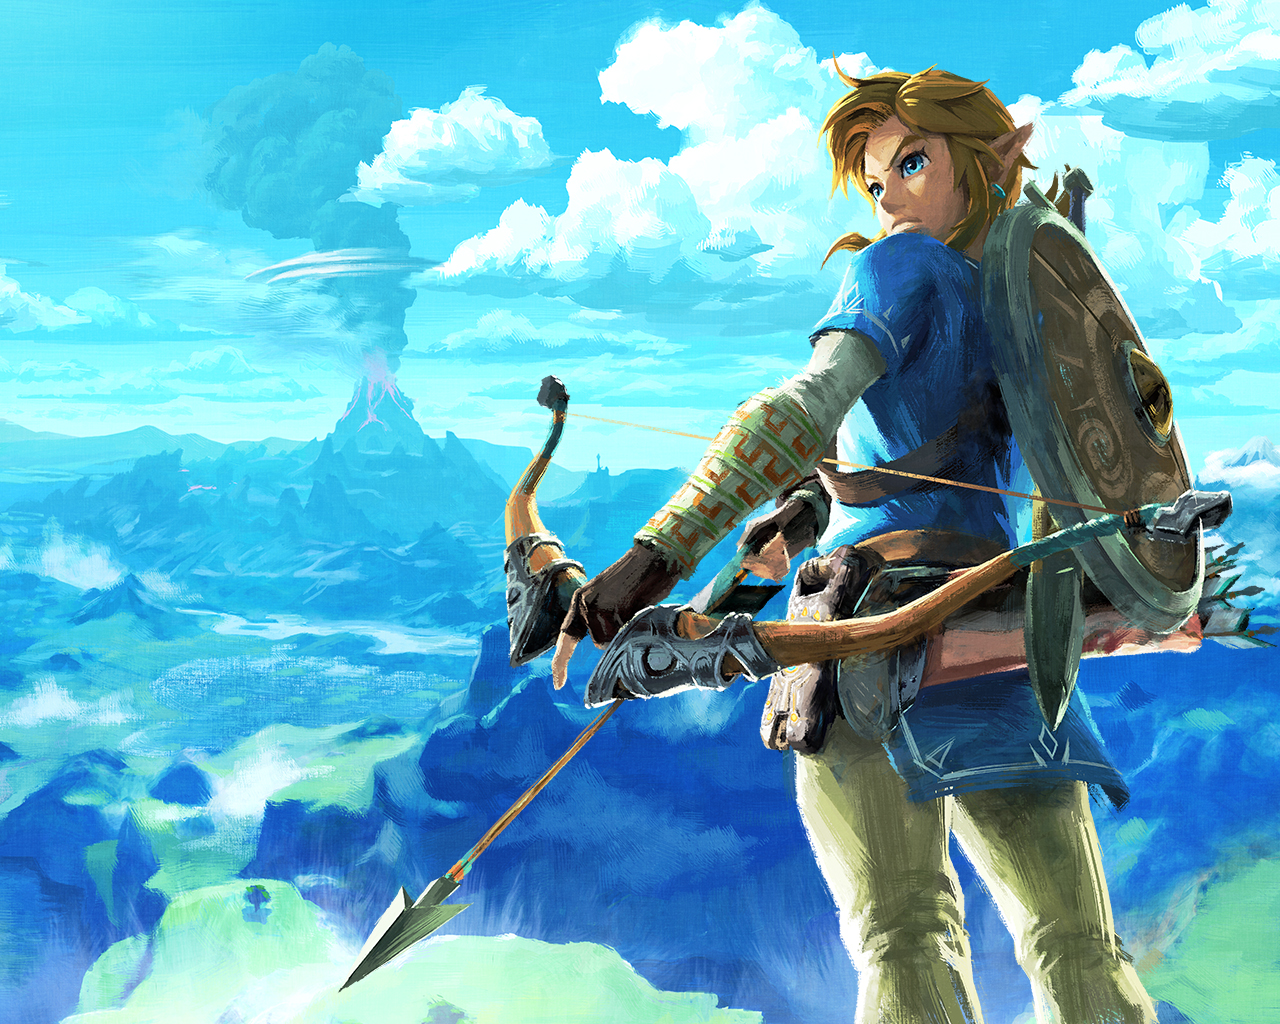 Nintendo Release Beautiful Wallpapers For Both Desktop And Mobile